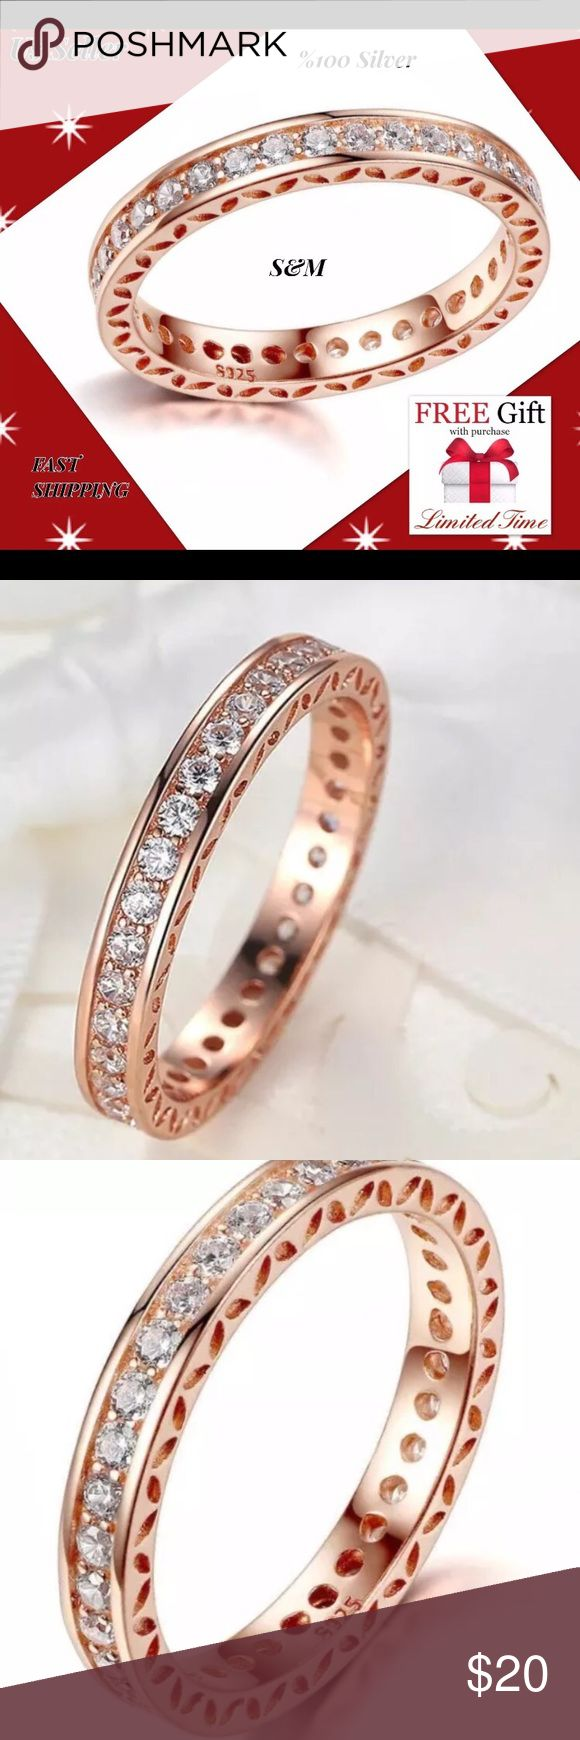 925 sterling silver live ring band size 8 fashion Feature 100% Brand New Model Number:YLPA7215 Material: 925 Silver AAA Zircon Crystal  Wearing Occasion: Wedding/ Engagement/ Anniversary/ Propose/ Party/ Gift Gift for: Girl friend/ Wife/ Mother/ Friends/Sister  We are the new seller but best seller. Now we have a limited time big promotion.  You can use or give gift your mom, dad, friend, sister... When you buy this item Nano technolog Microfiber claening Cloth $19.99 value is free for you…